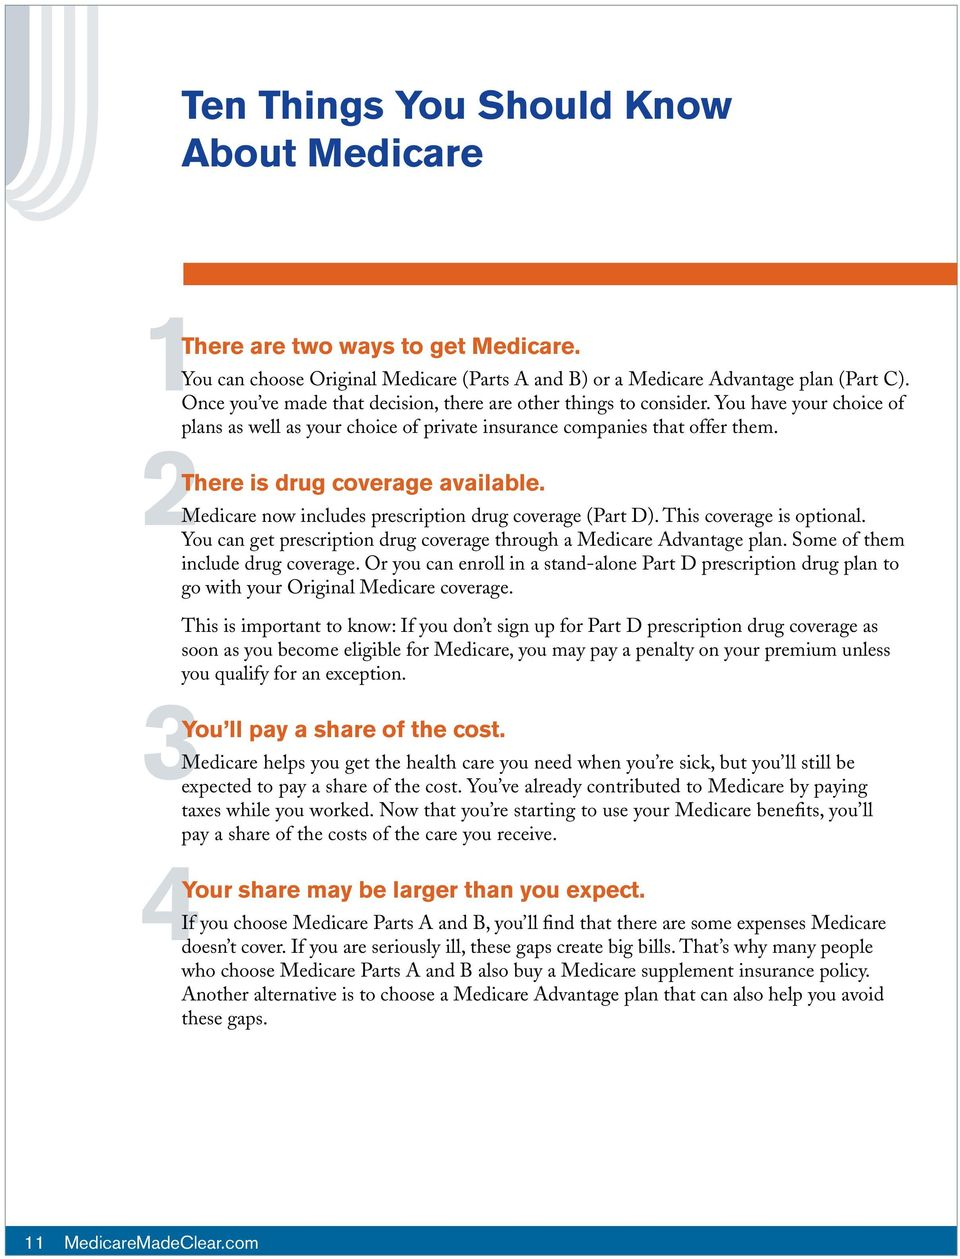 2There is drug coverage available. Medicare now includes prescription drug coverage (Part D). This coverage is optional. You can get prescription drug coverage through a Medicare Advantage plan.